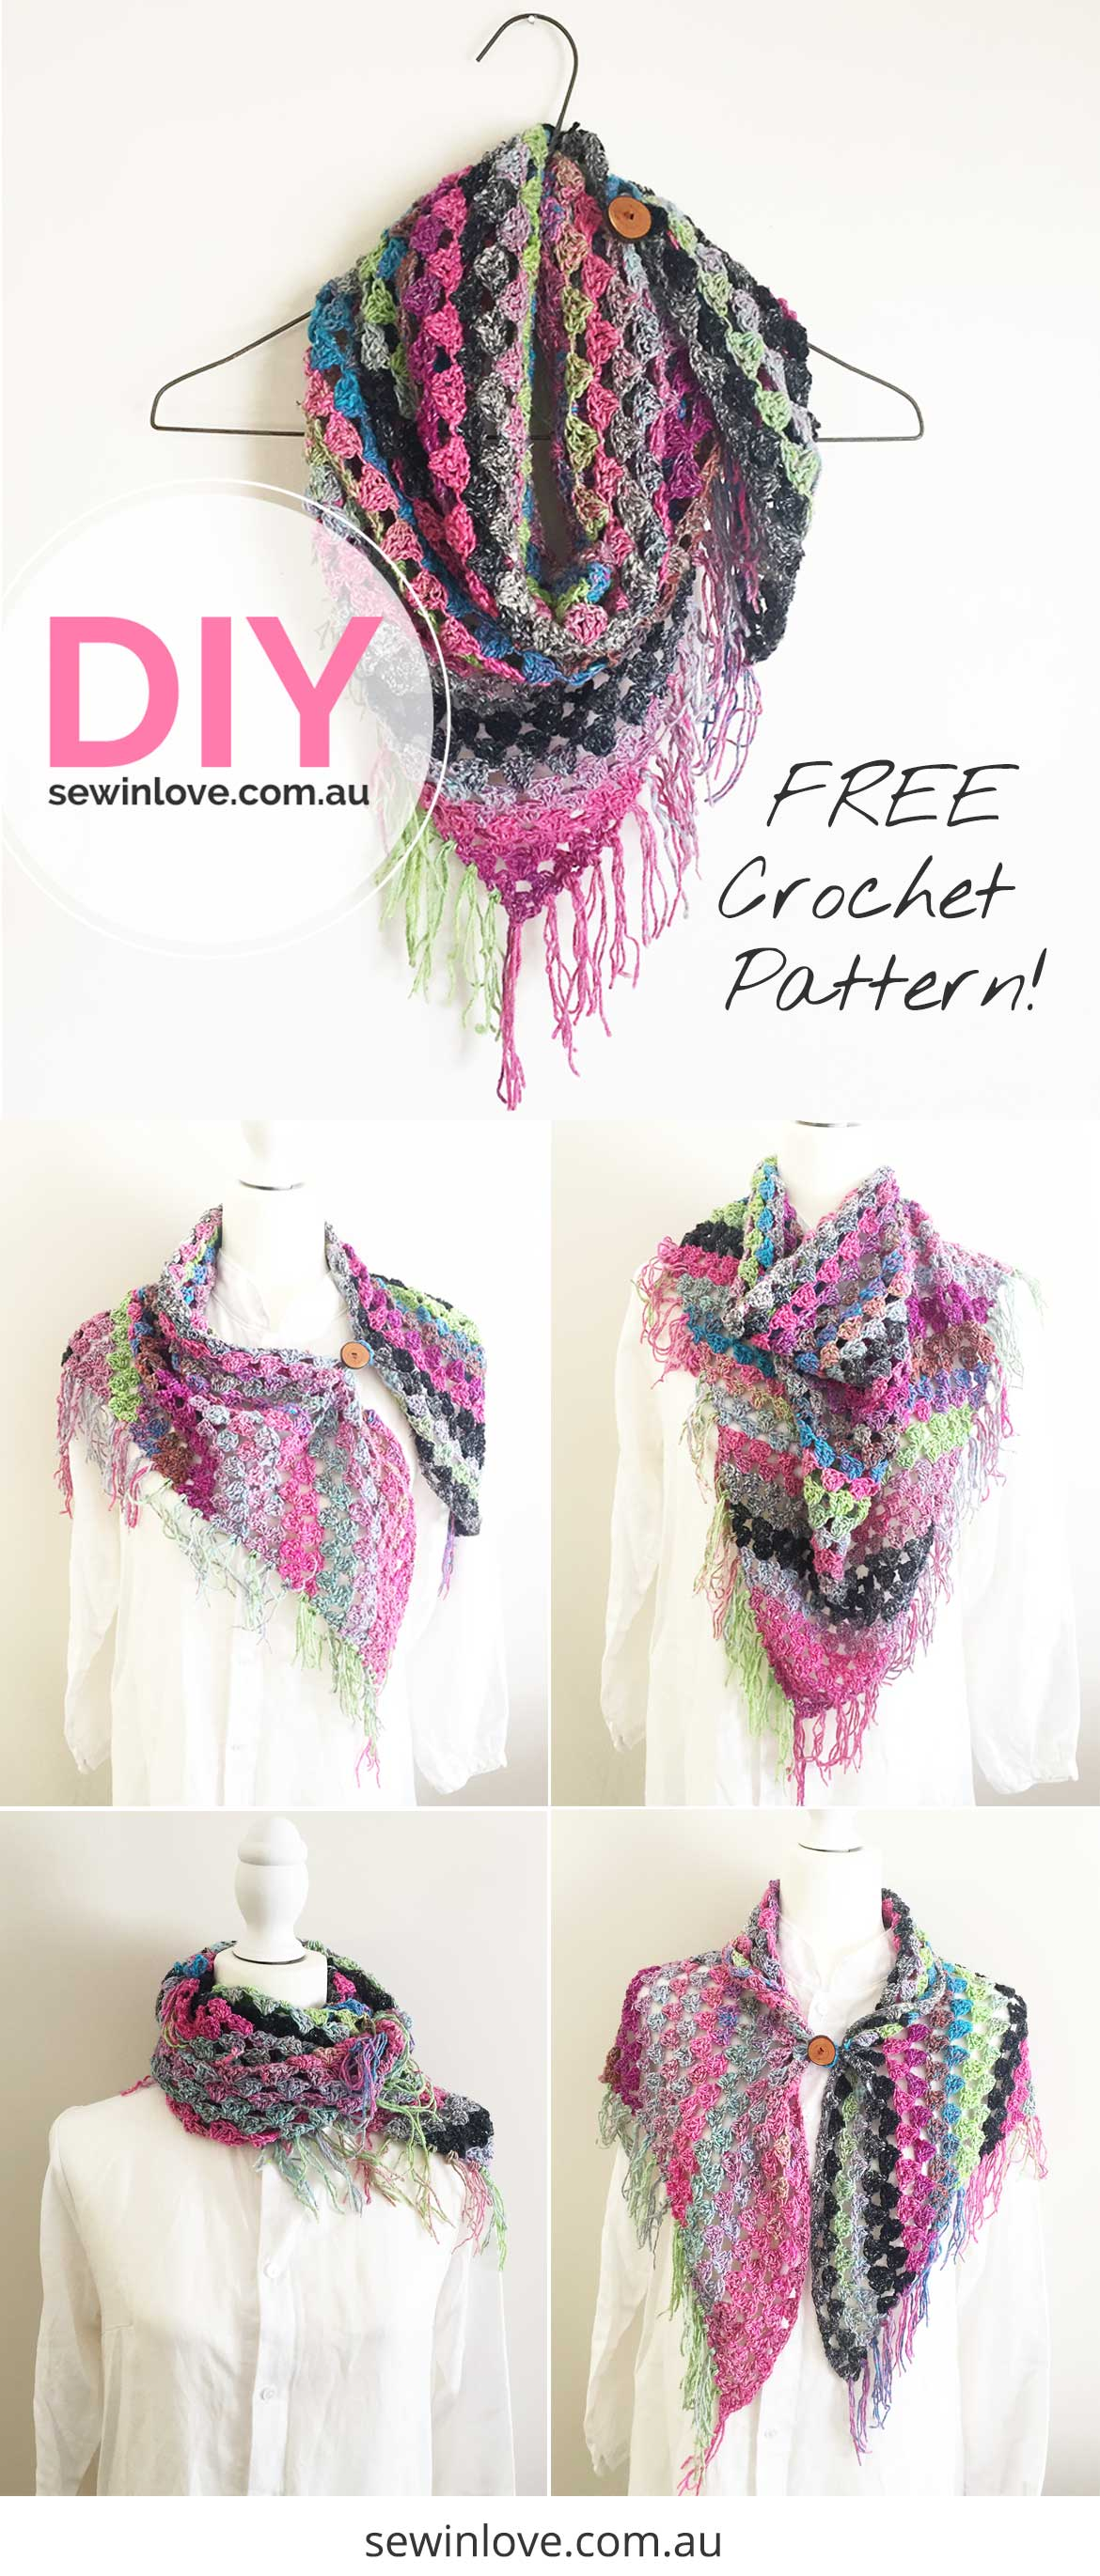 FREE Crochet Scarf Pattern: This easy scarf pattern includes a free video tutorial which shows you how to crochet. I made mine using Noro silk and wool yarn. This is a versatile piece with so many ways to wear it!